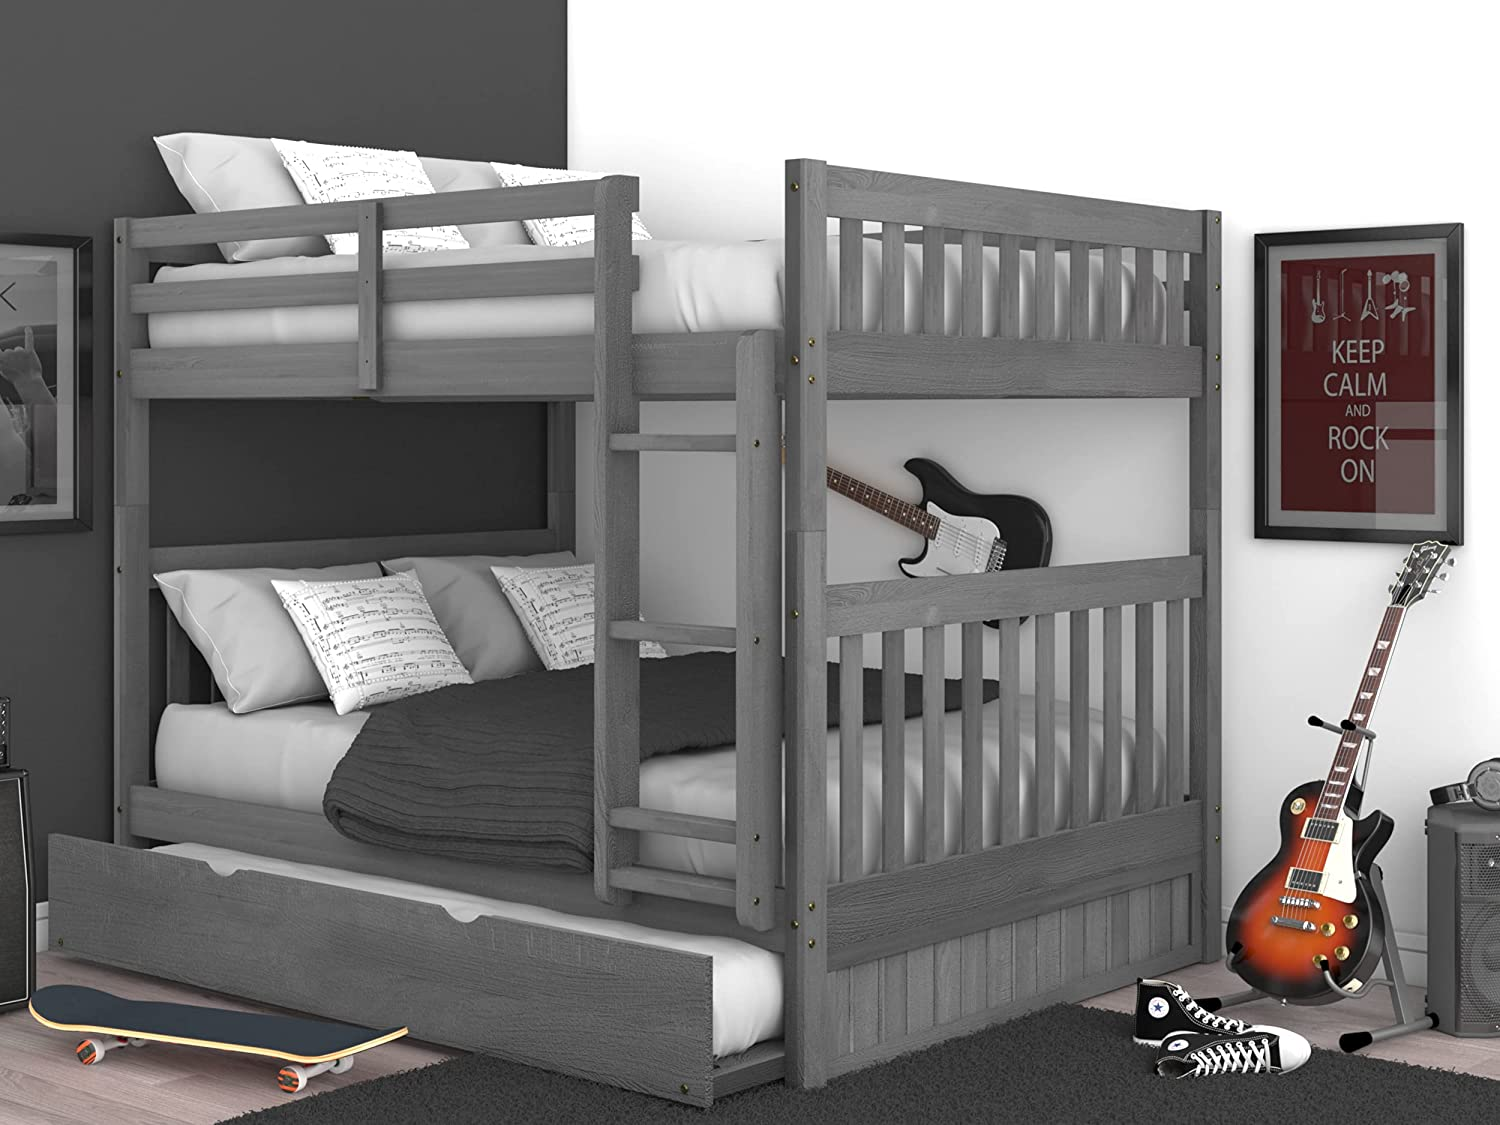 Excellence OS Home and Office 83215-TRUN-KD Charcoal Bunk Gray Full Memphis Mall